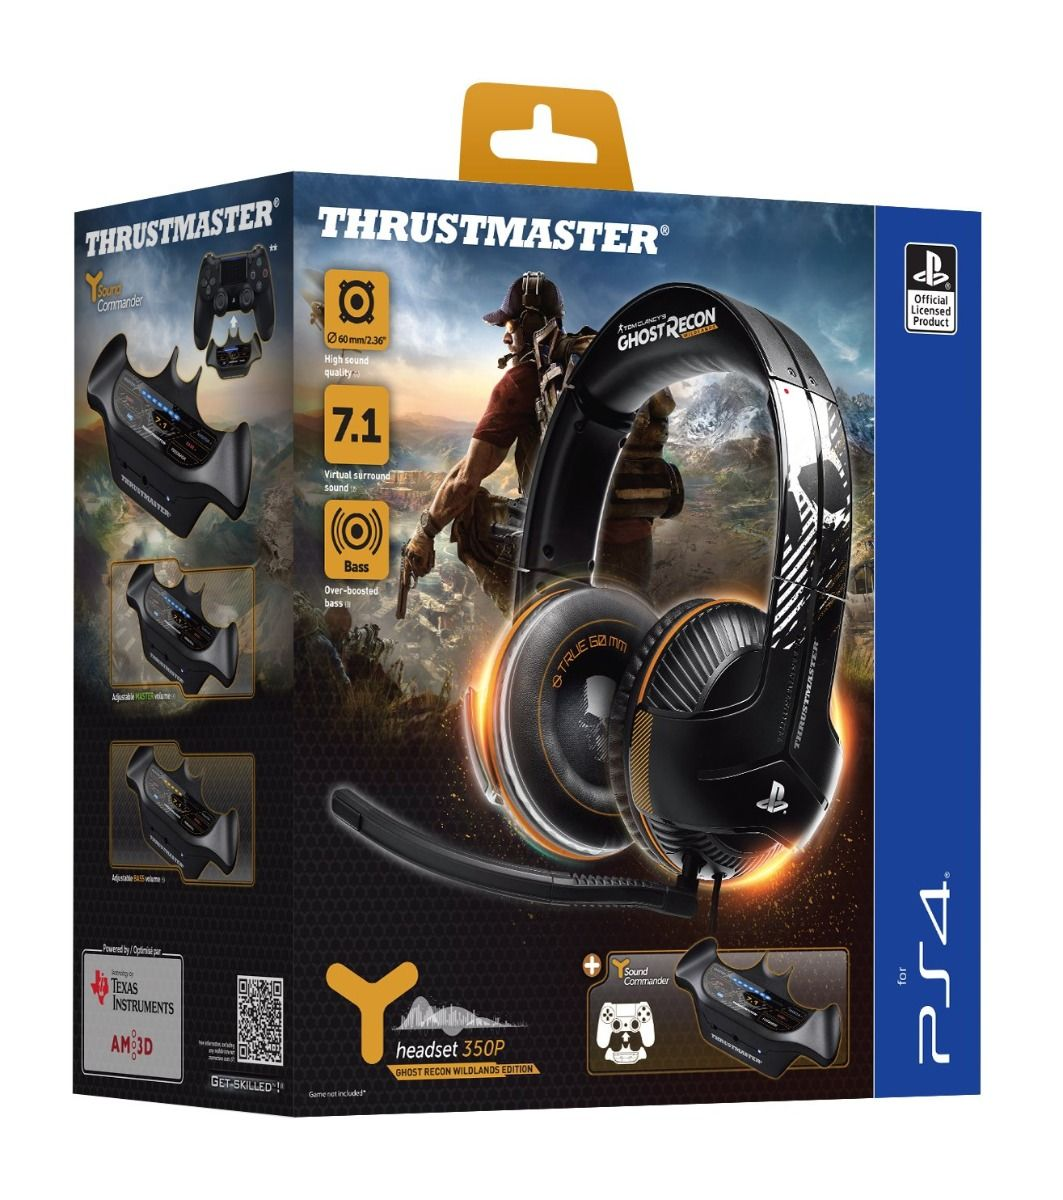 Thrustmaster Y-350P Ghost Recon Wildlands Edition Gaming Headset (PS4)